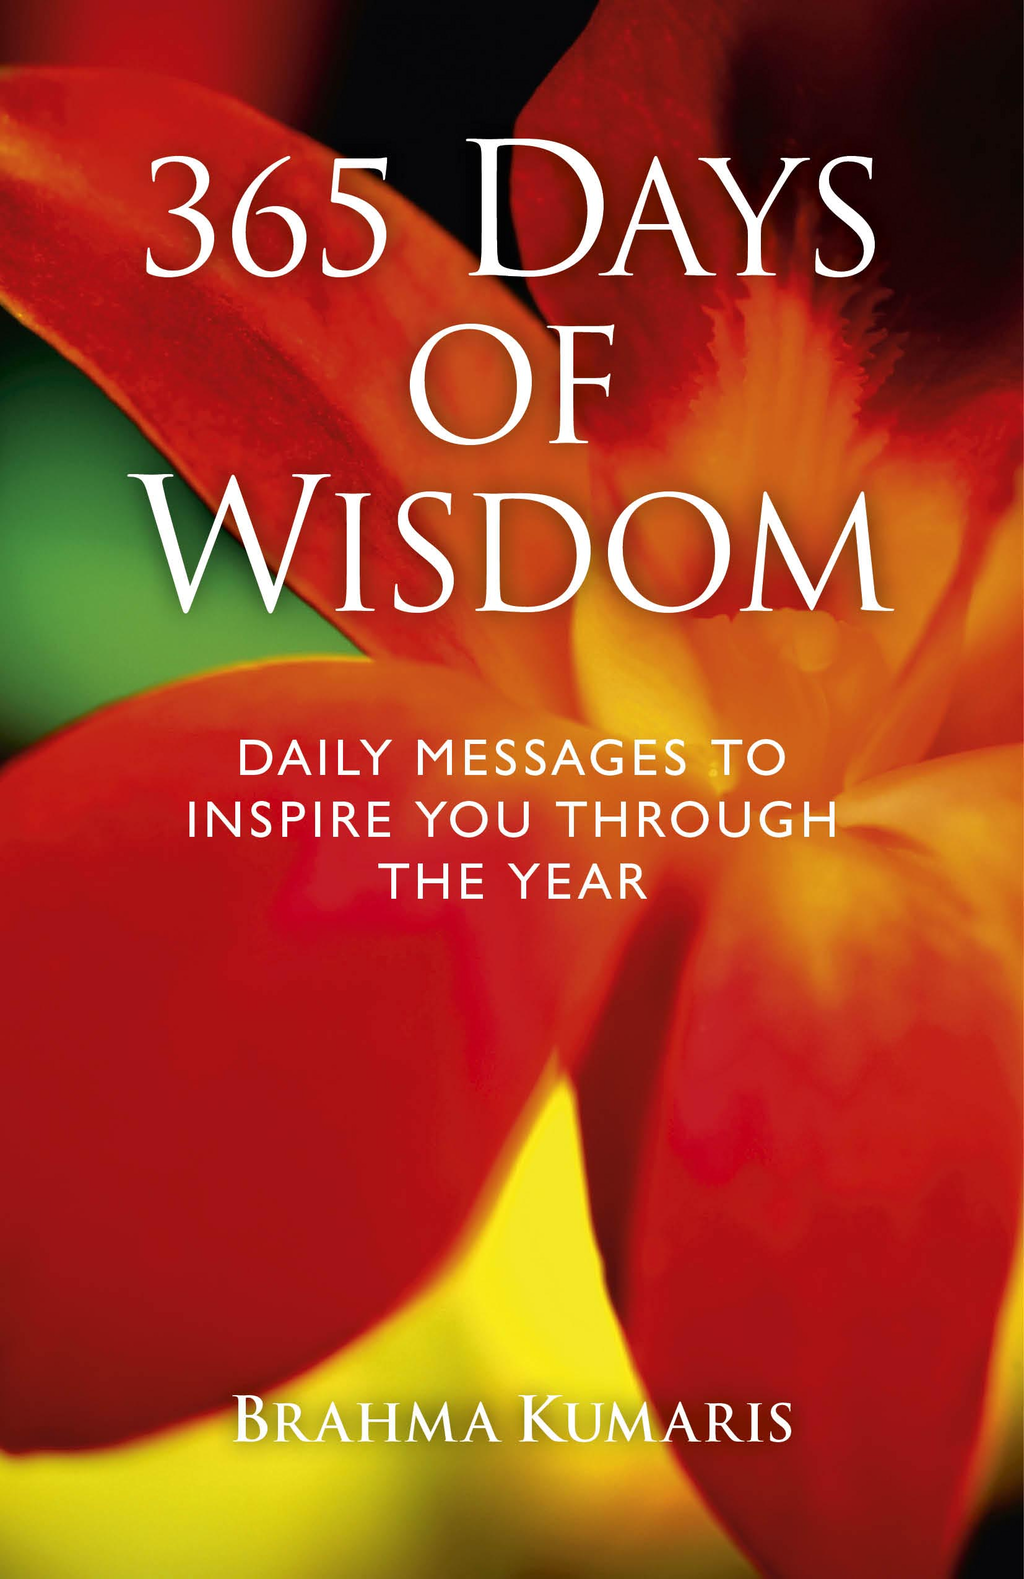 365 Days of Wisdom: Daily Messages To Inspire You Through The Year By: Dadi Janki